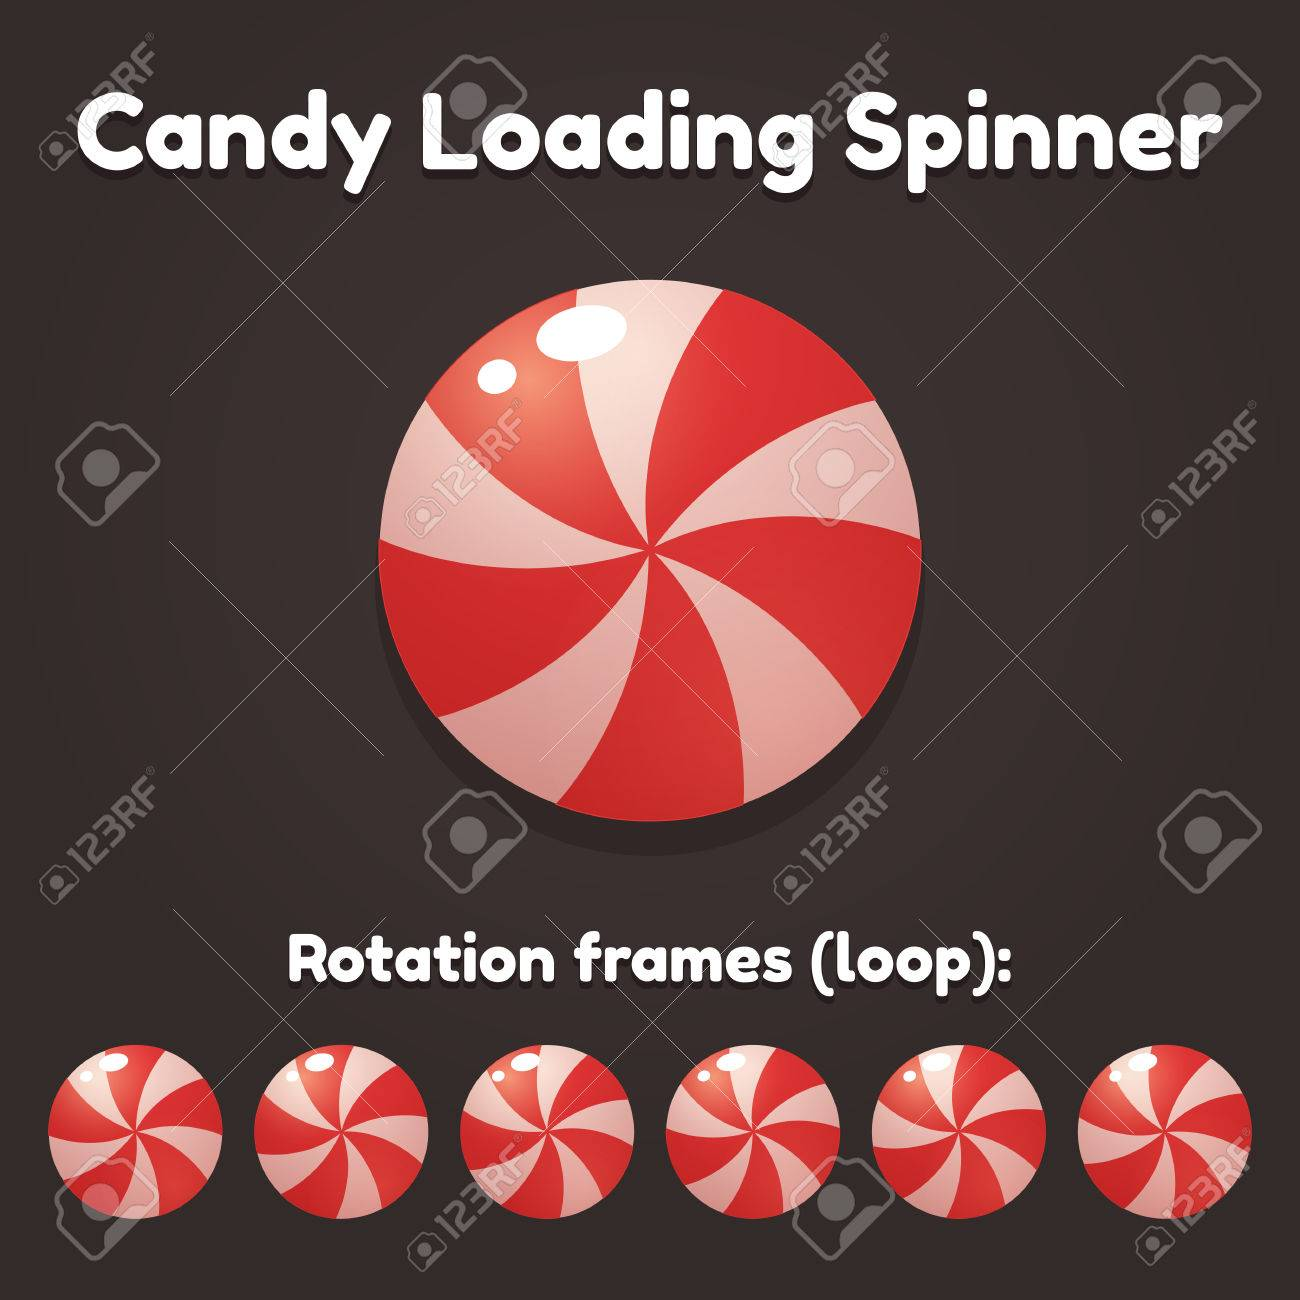 Spinning cartoon candy preloader for game, application or website